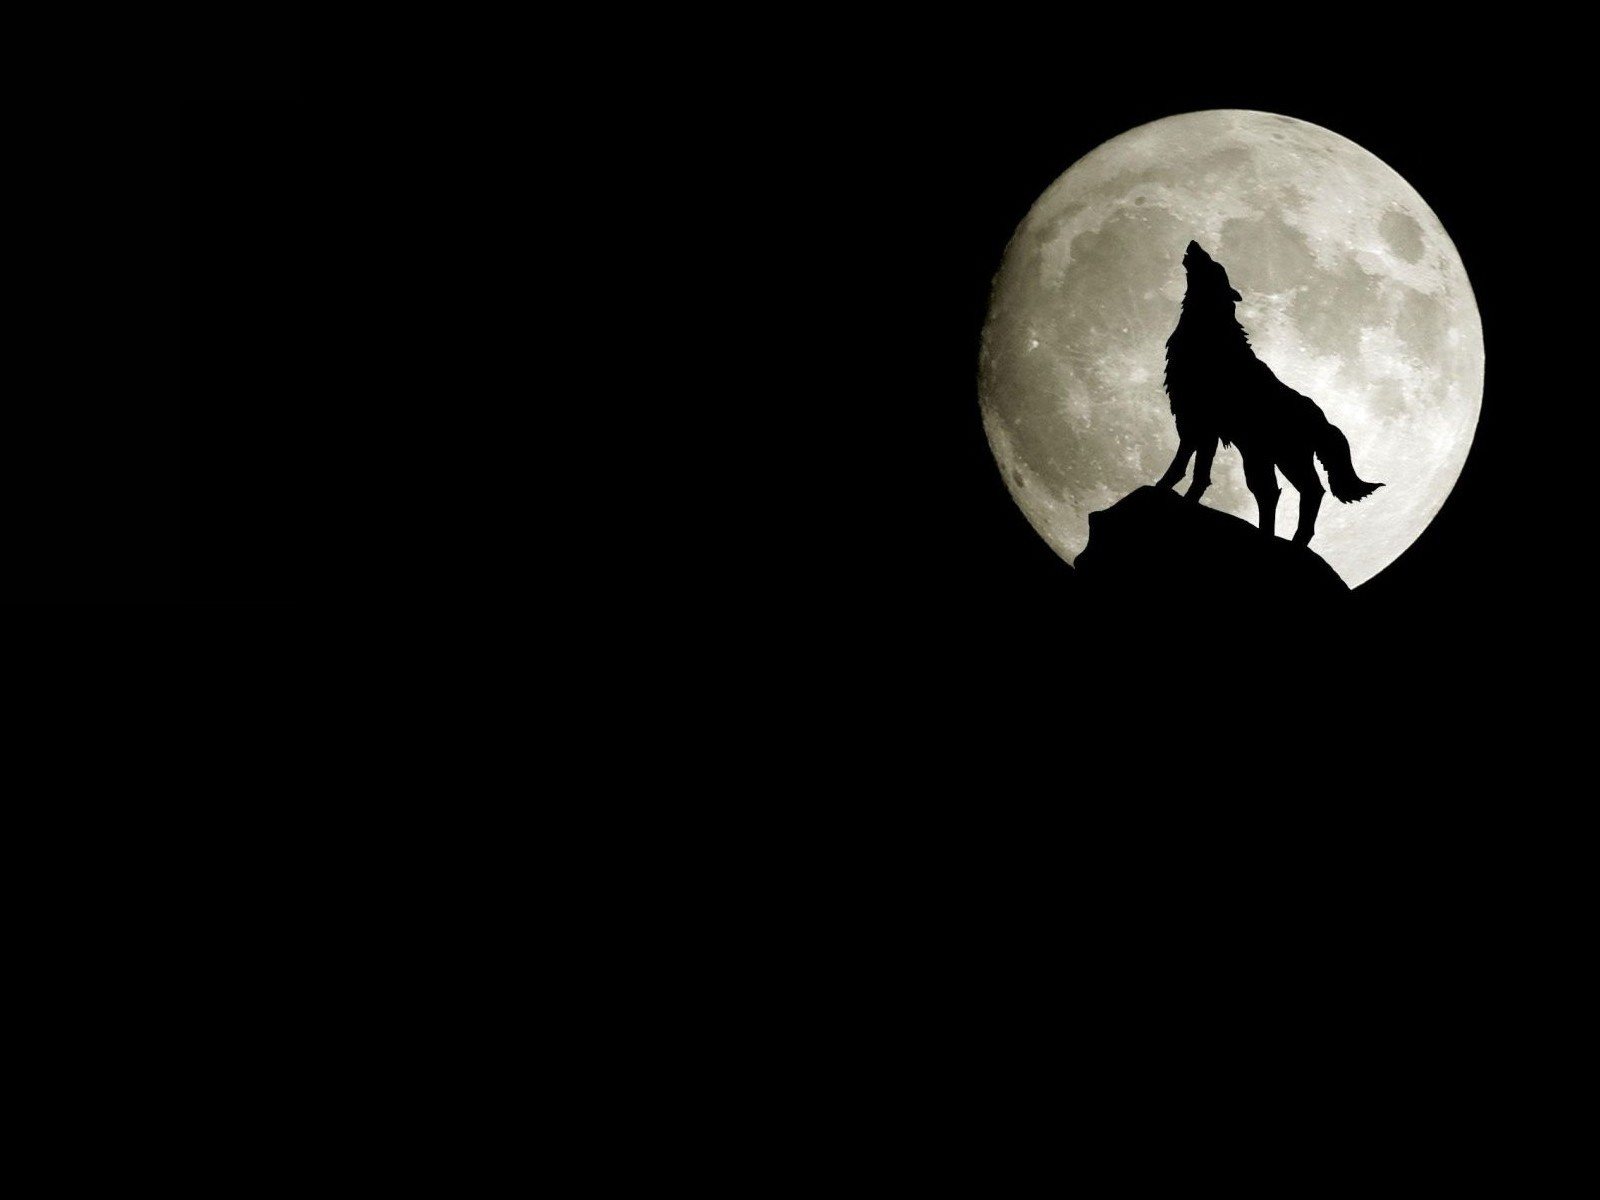 moon howling wolf Wolves HD Wallpaper